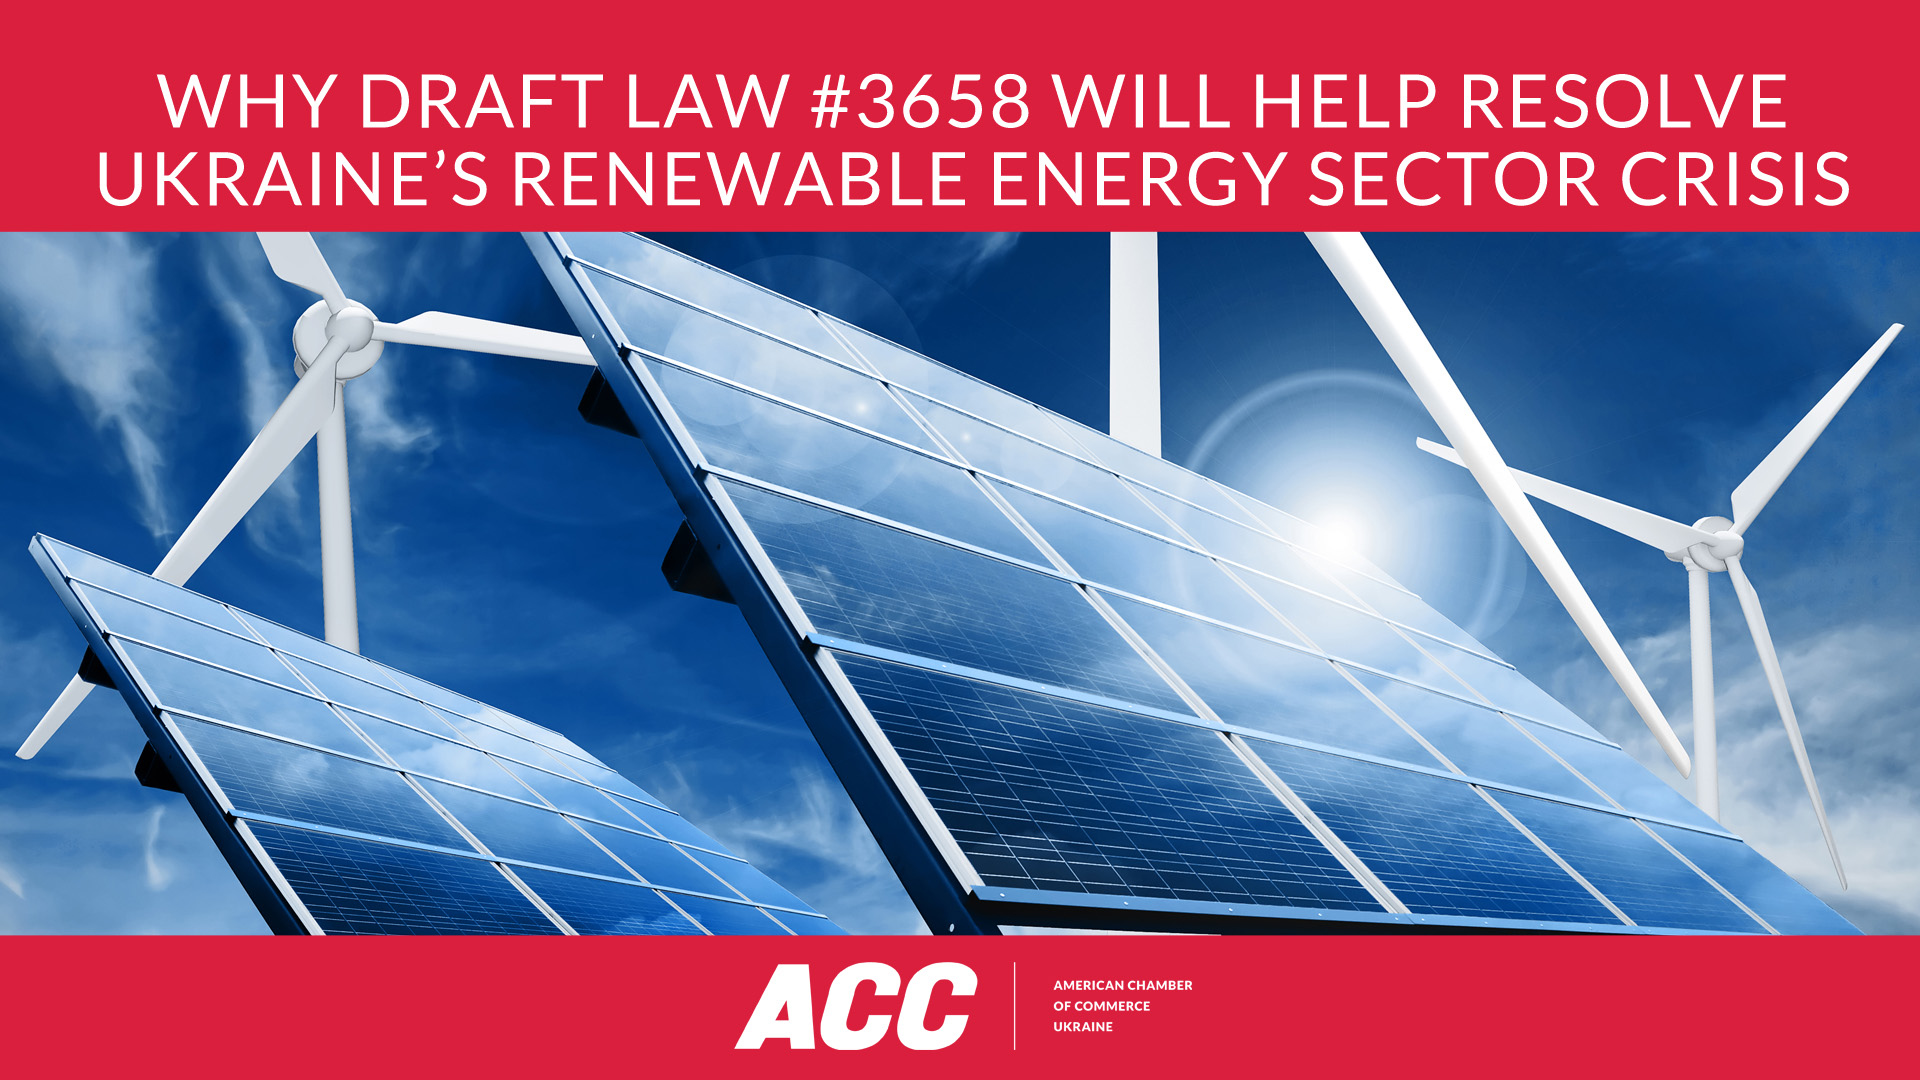 Why Draft Law #3658 will help resolve Ukraine's renewable energy sector crisis